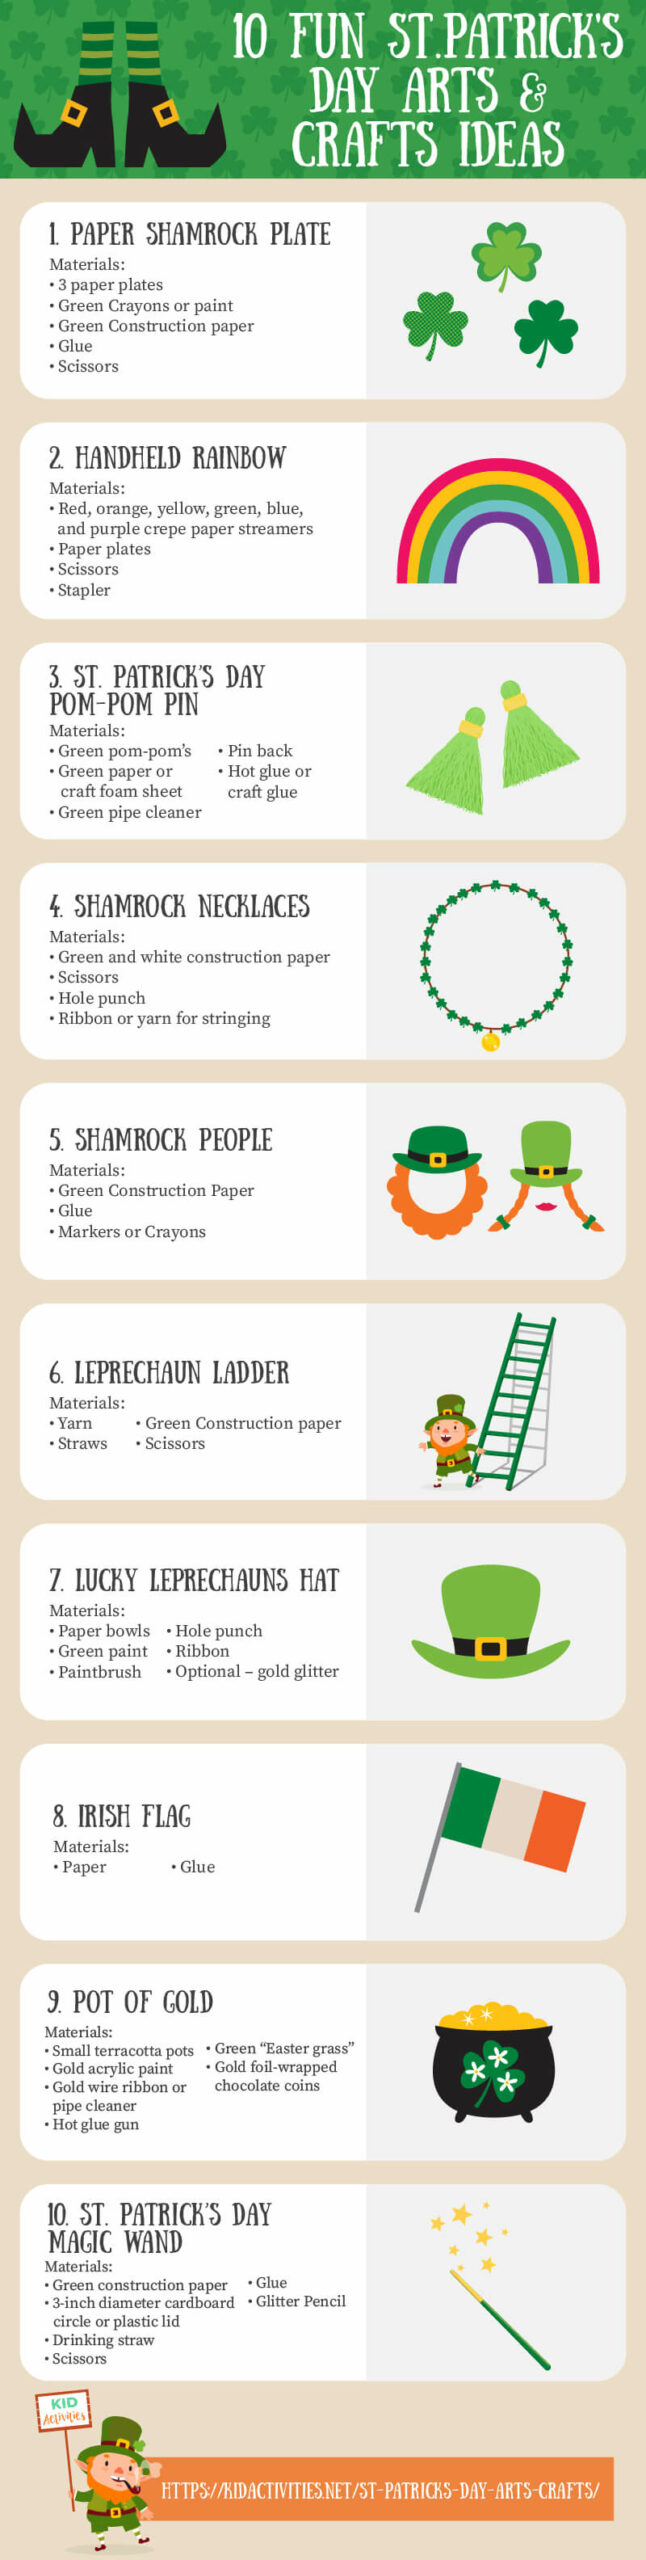 An infographic with 10 St. Patrick's Day arts and crafts ideas including what materials are needed.